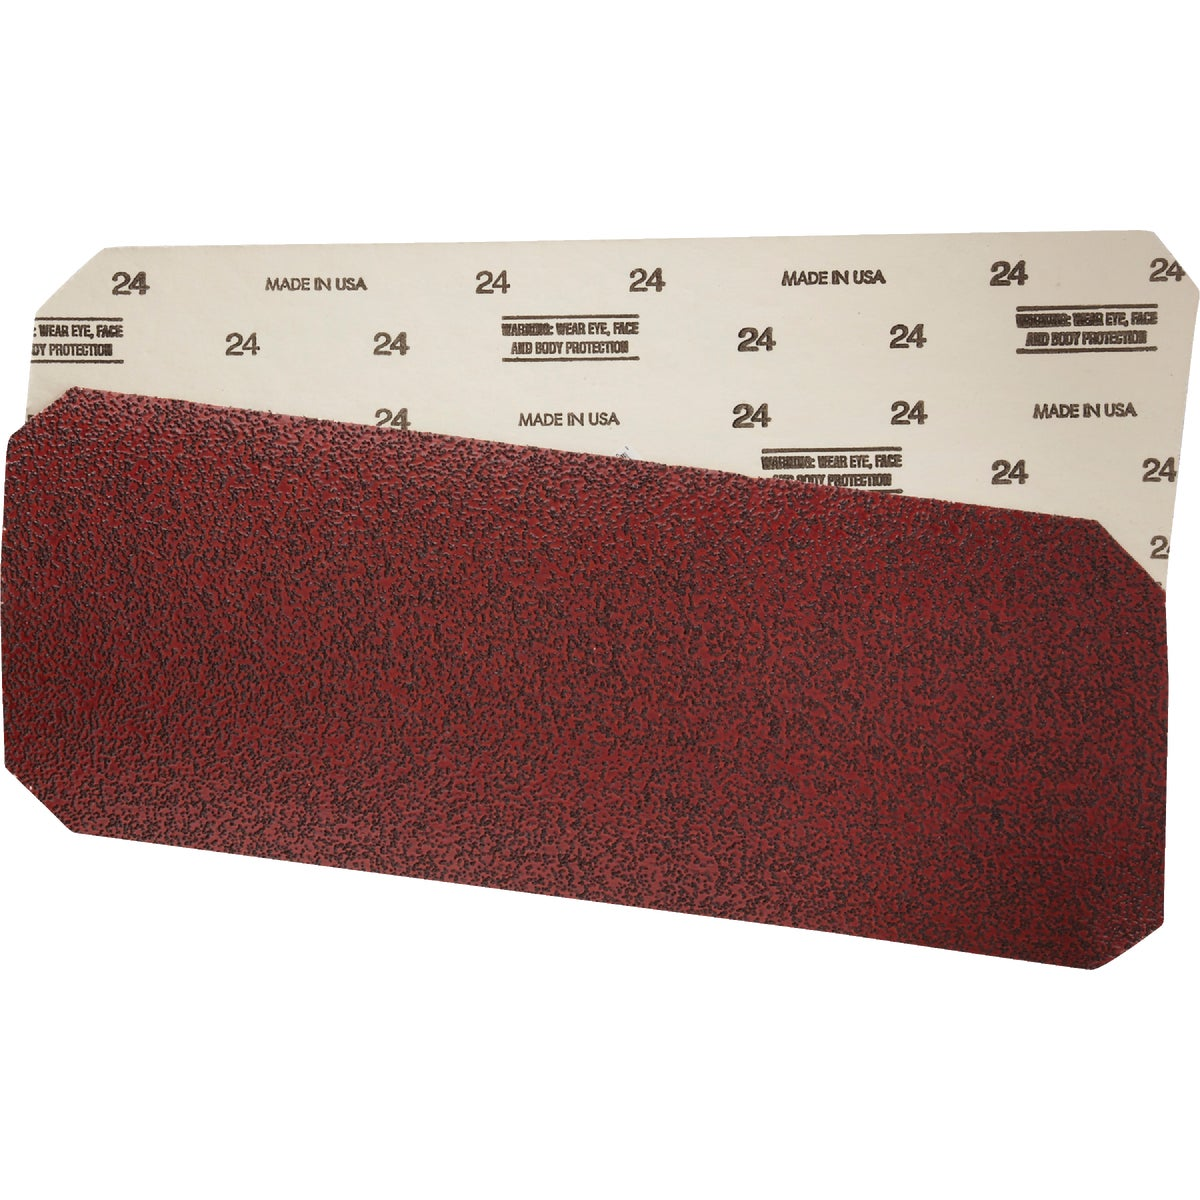 24G FLOOR SANDING SHEET - 002-830024 by Virginia Abrasives